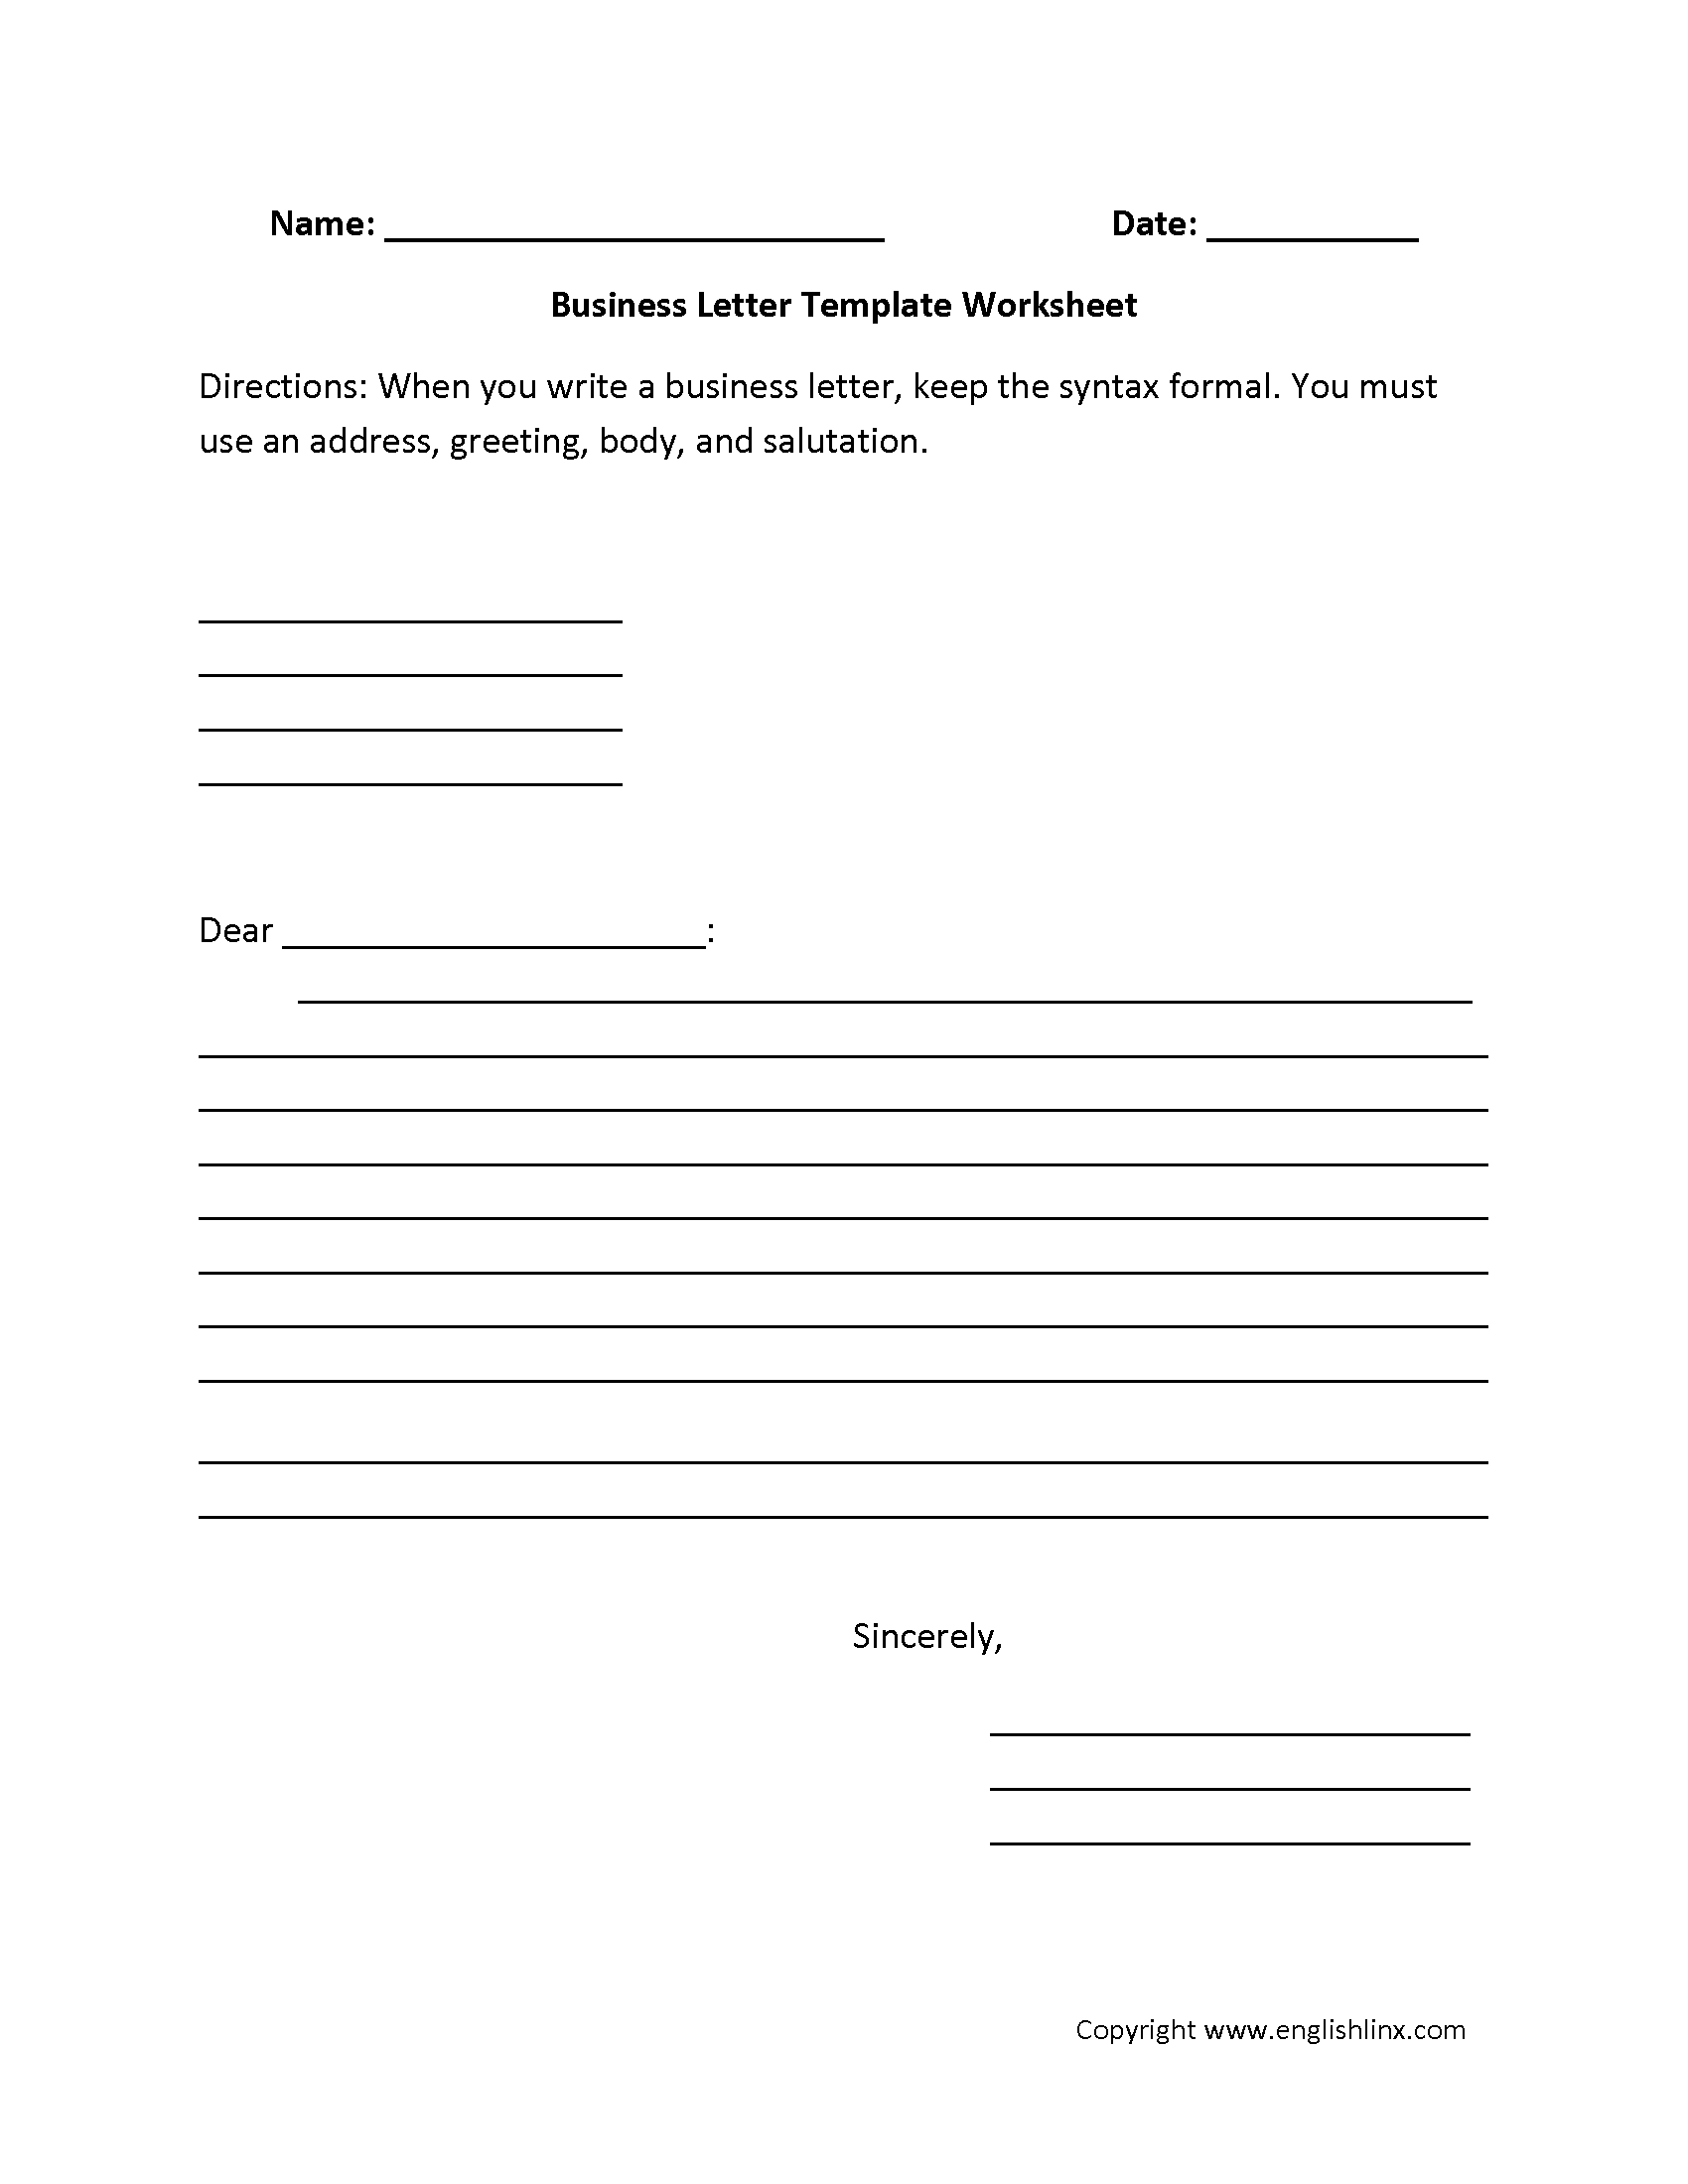 Letter writing worksheets business letter writing worksheets business letter writing worksheets accmission Image collections